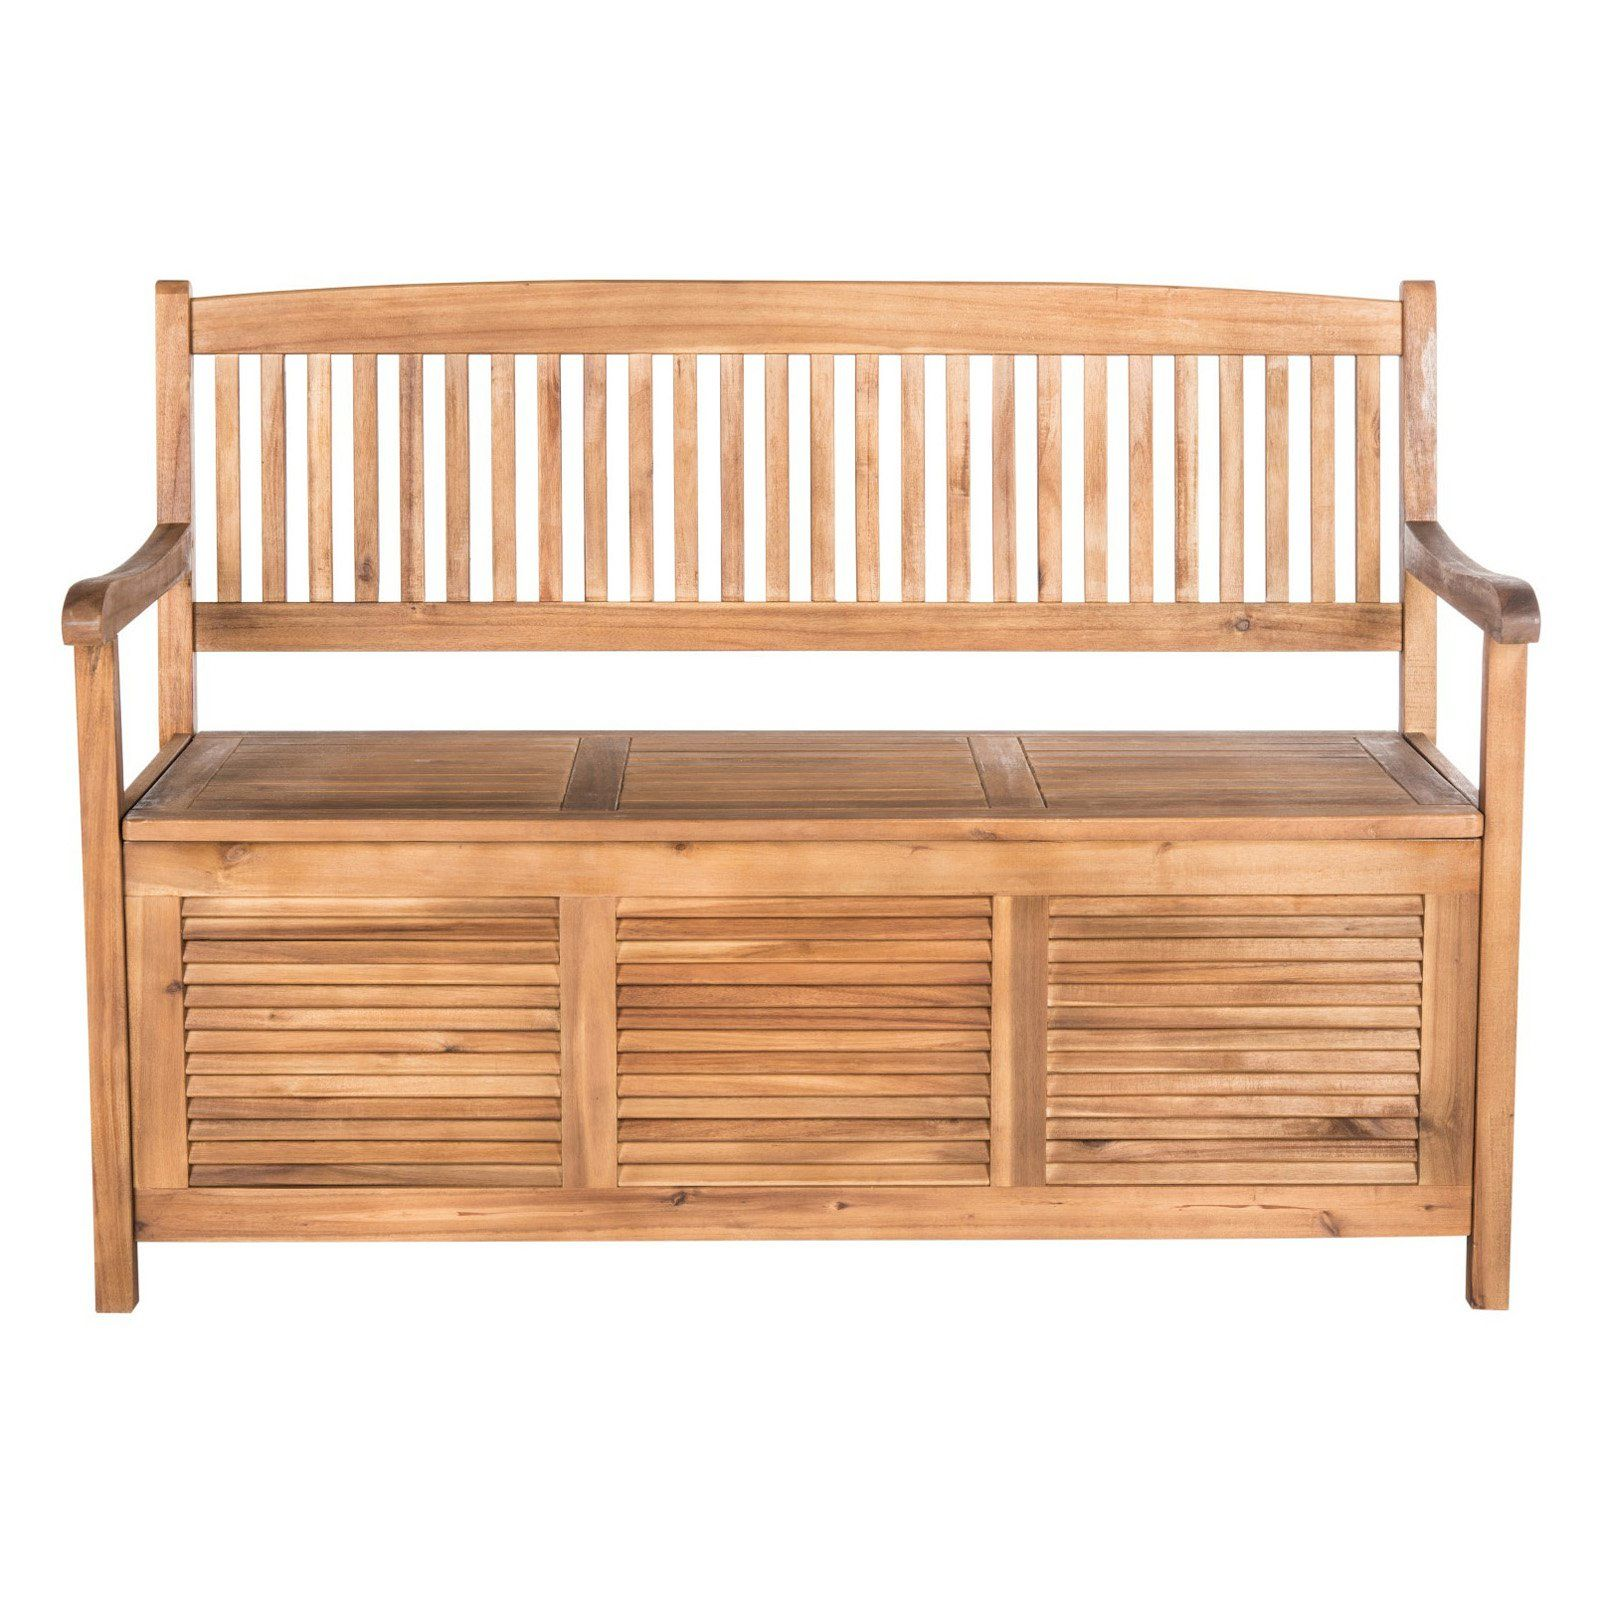 Pleasant Outdoor Safavieh Brisbane 4 Ft Storage Bench In 2019 Caraccident5 Cool Chair Designs And Ideas Caraccident5Info